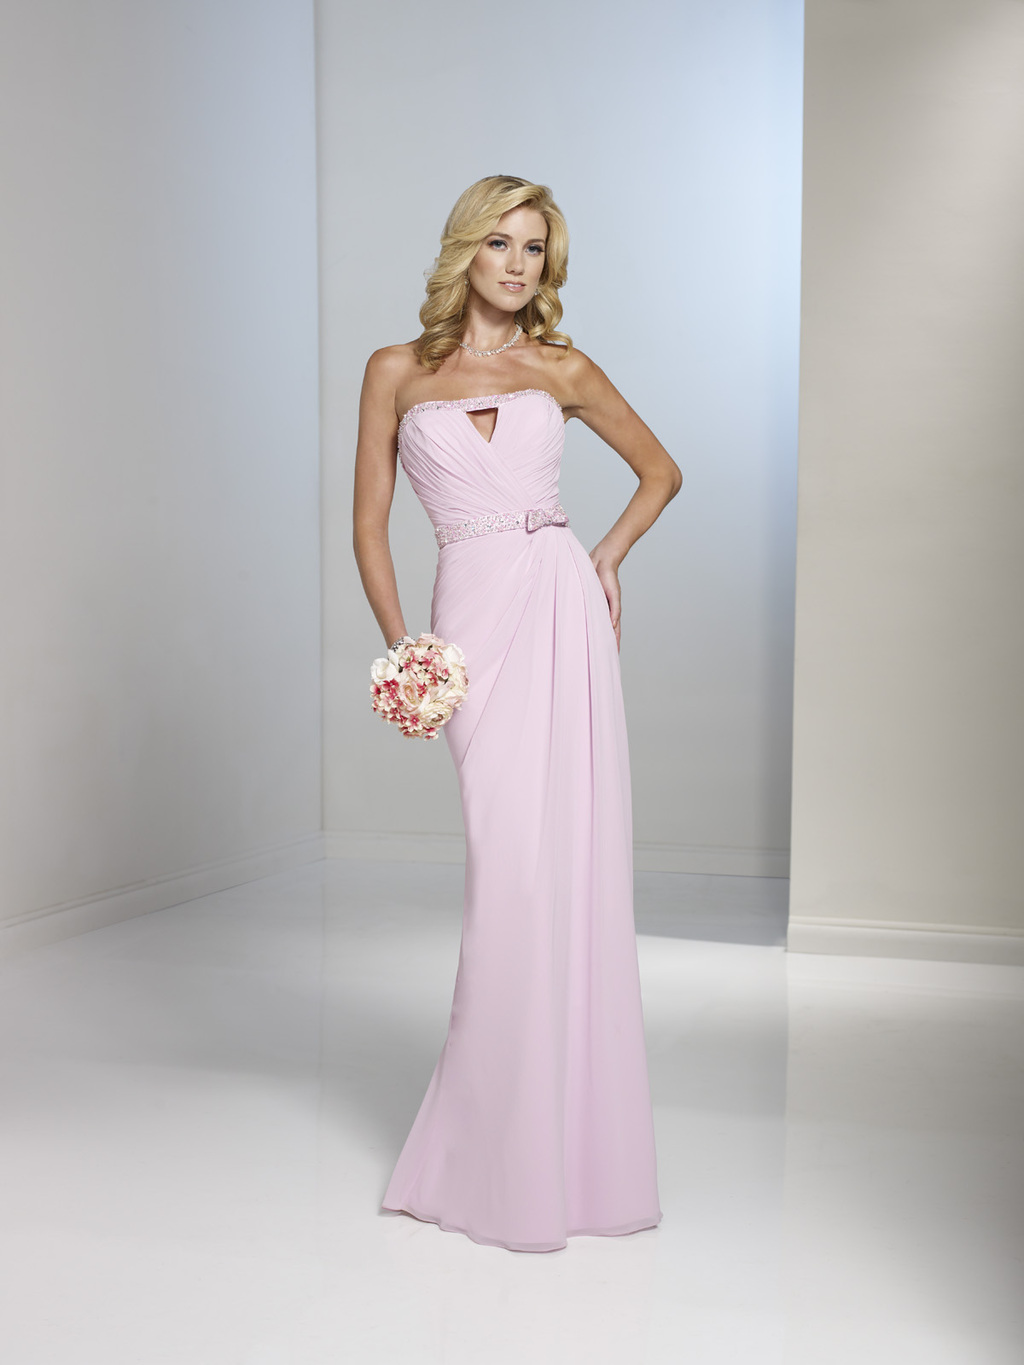 Chic-mother-of-the-bride-dresses-wedding-fashion-dos-and-donts-mon-cheri-2.full